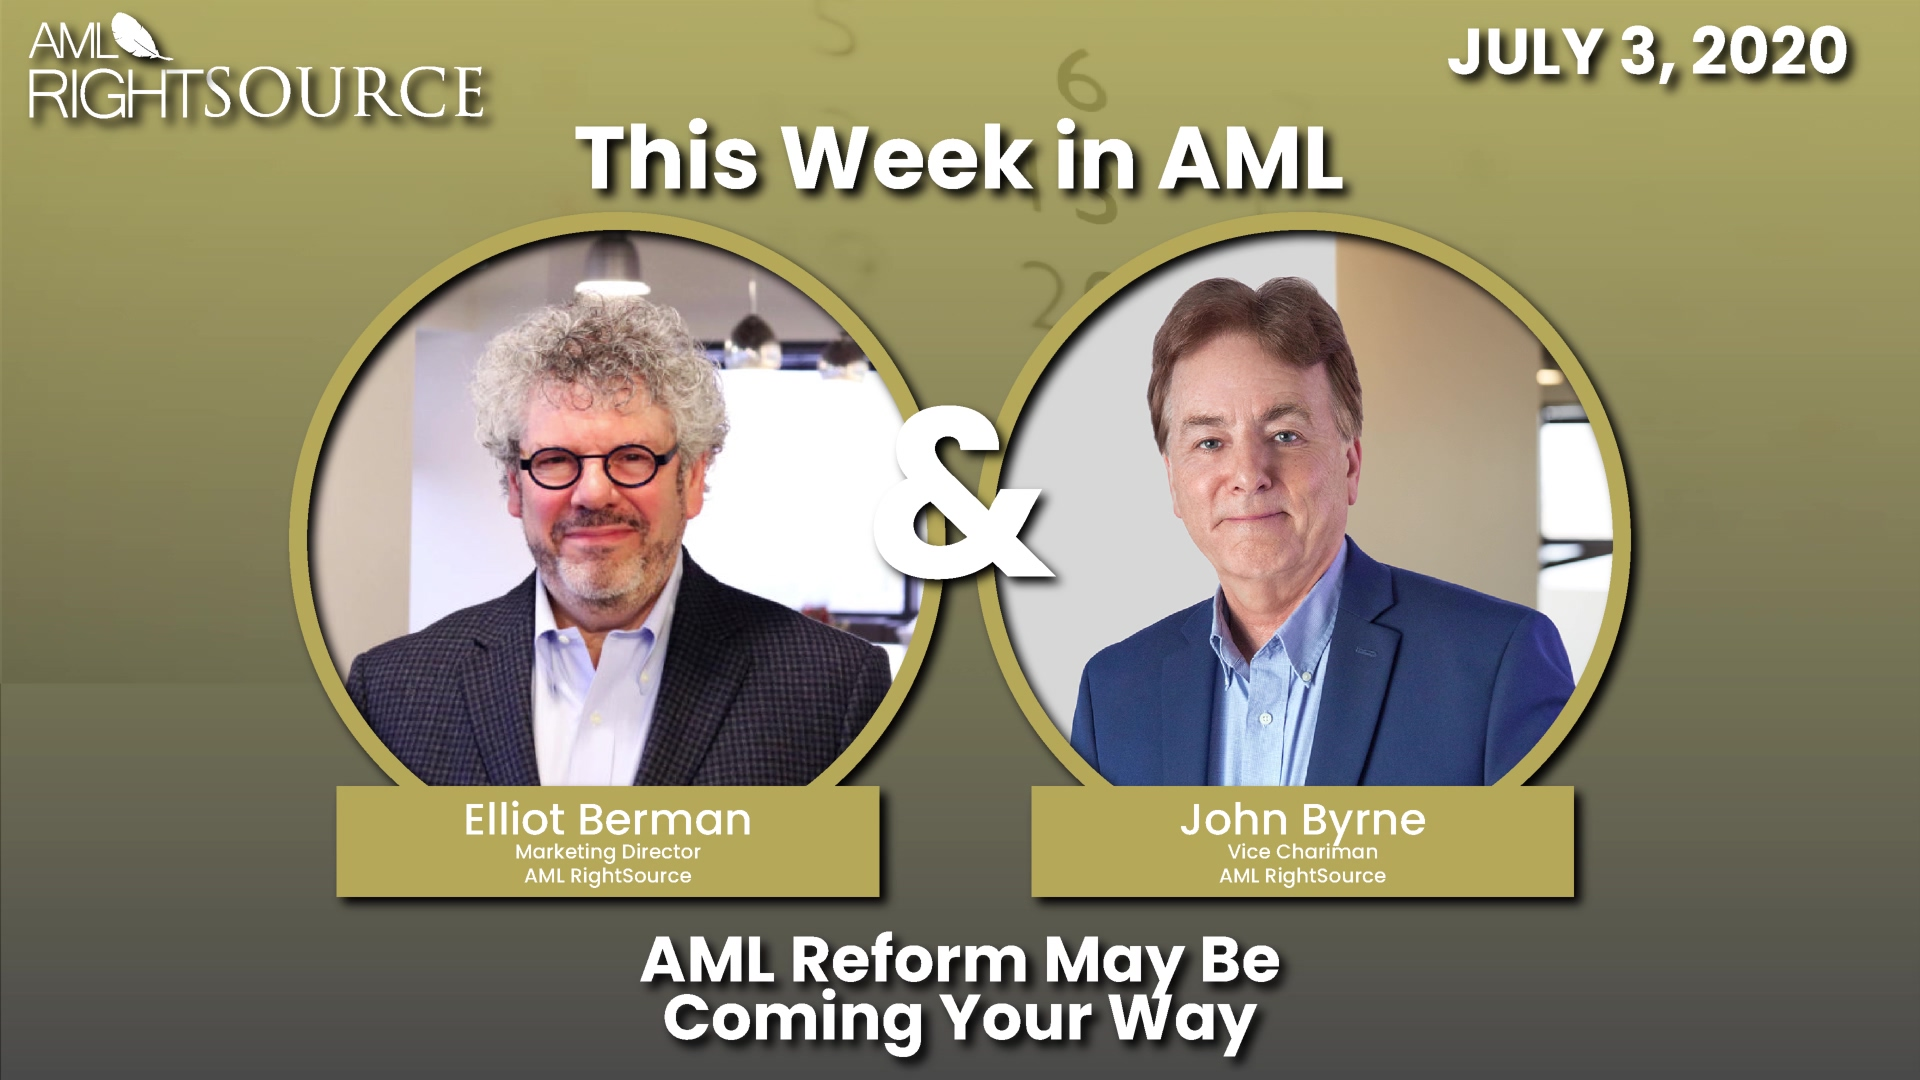 This_Week_In_AML_AML_Reform_May_Be_Coming_Our_Way